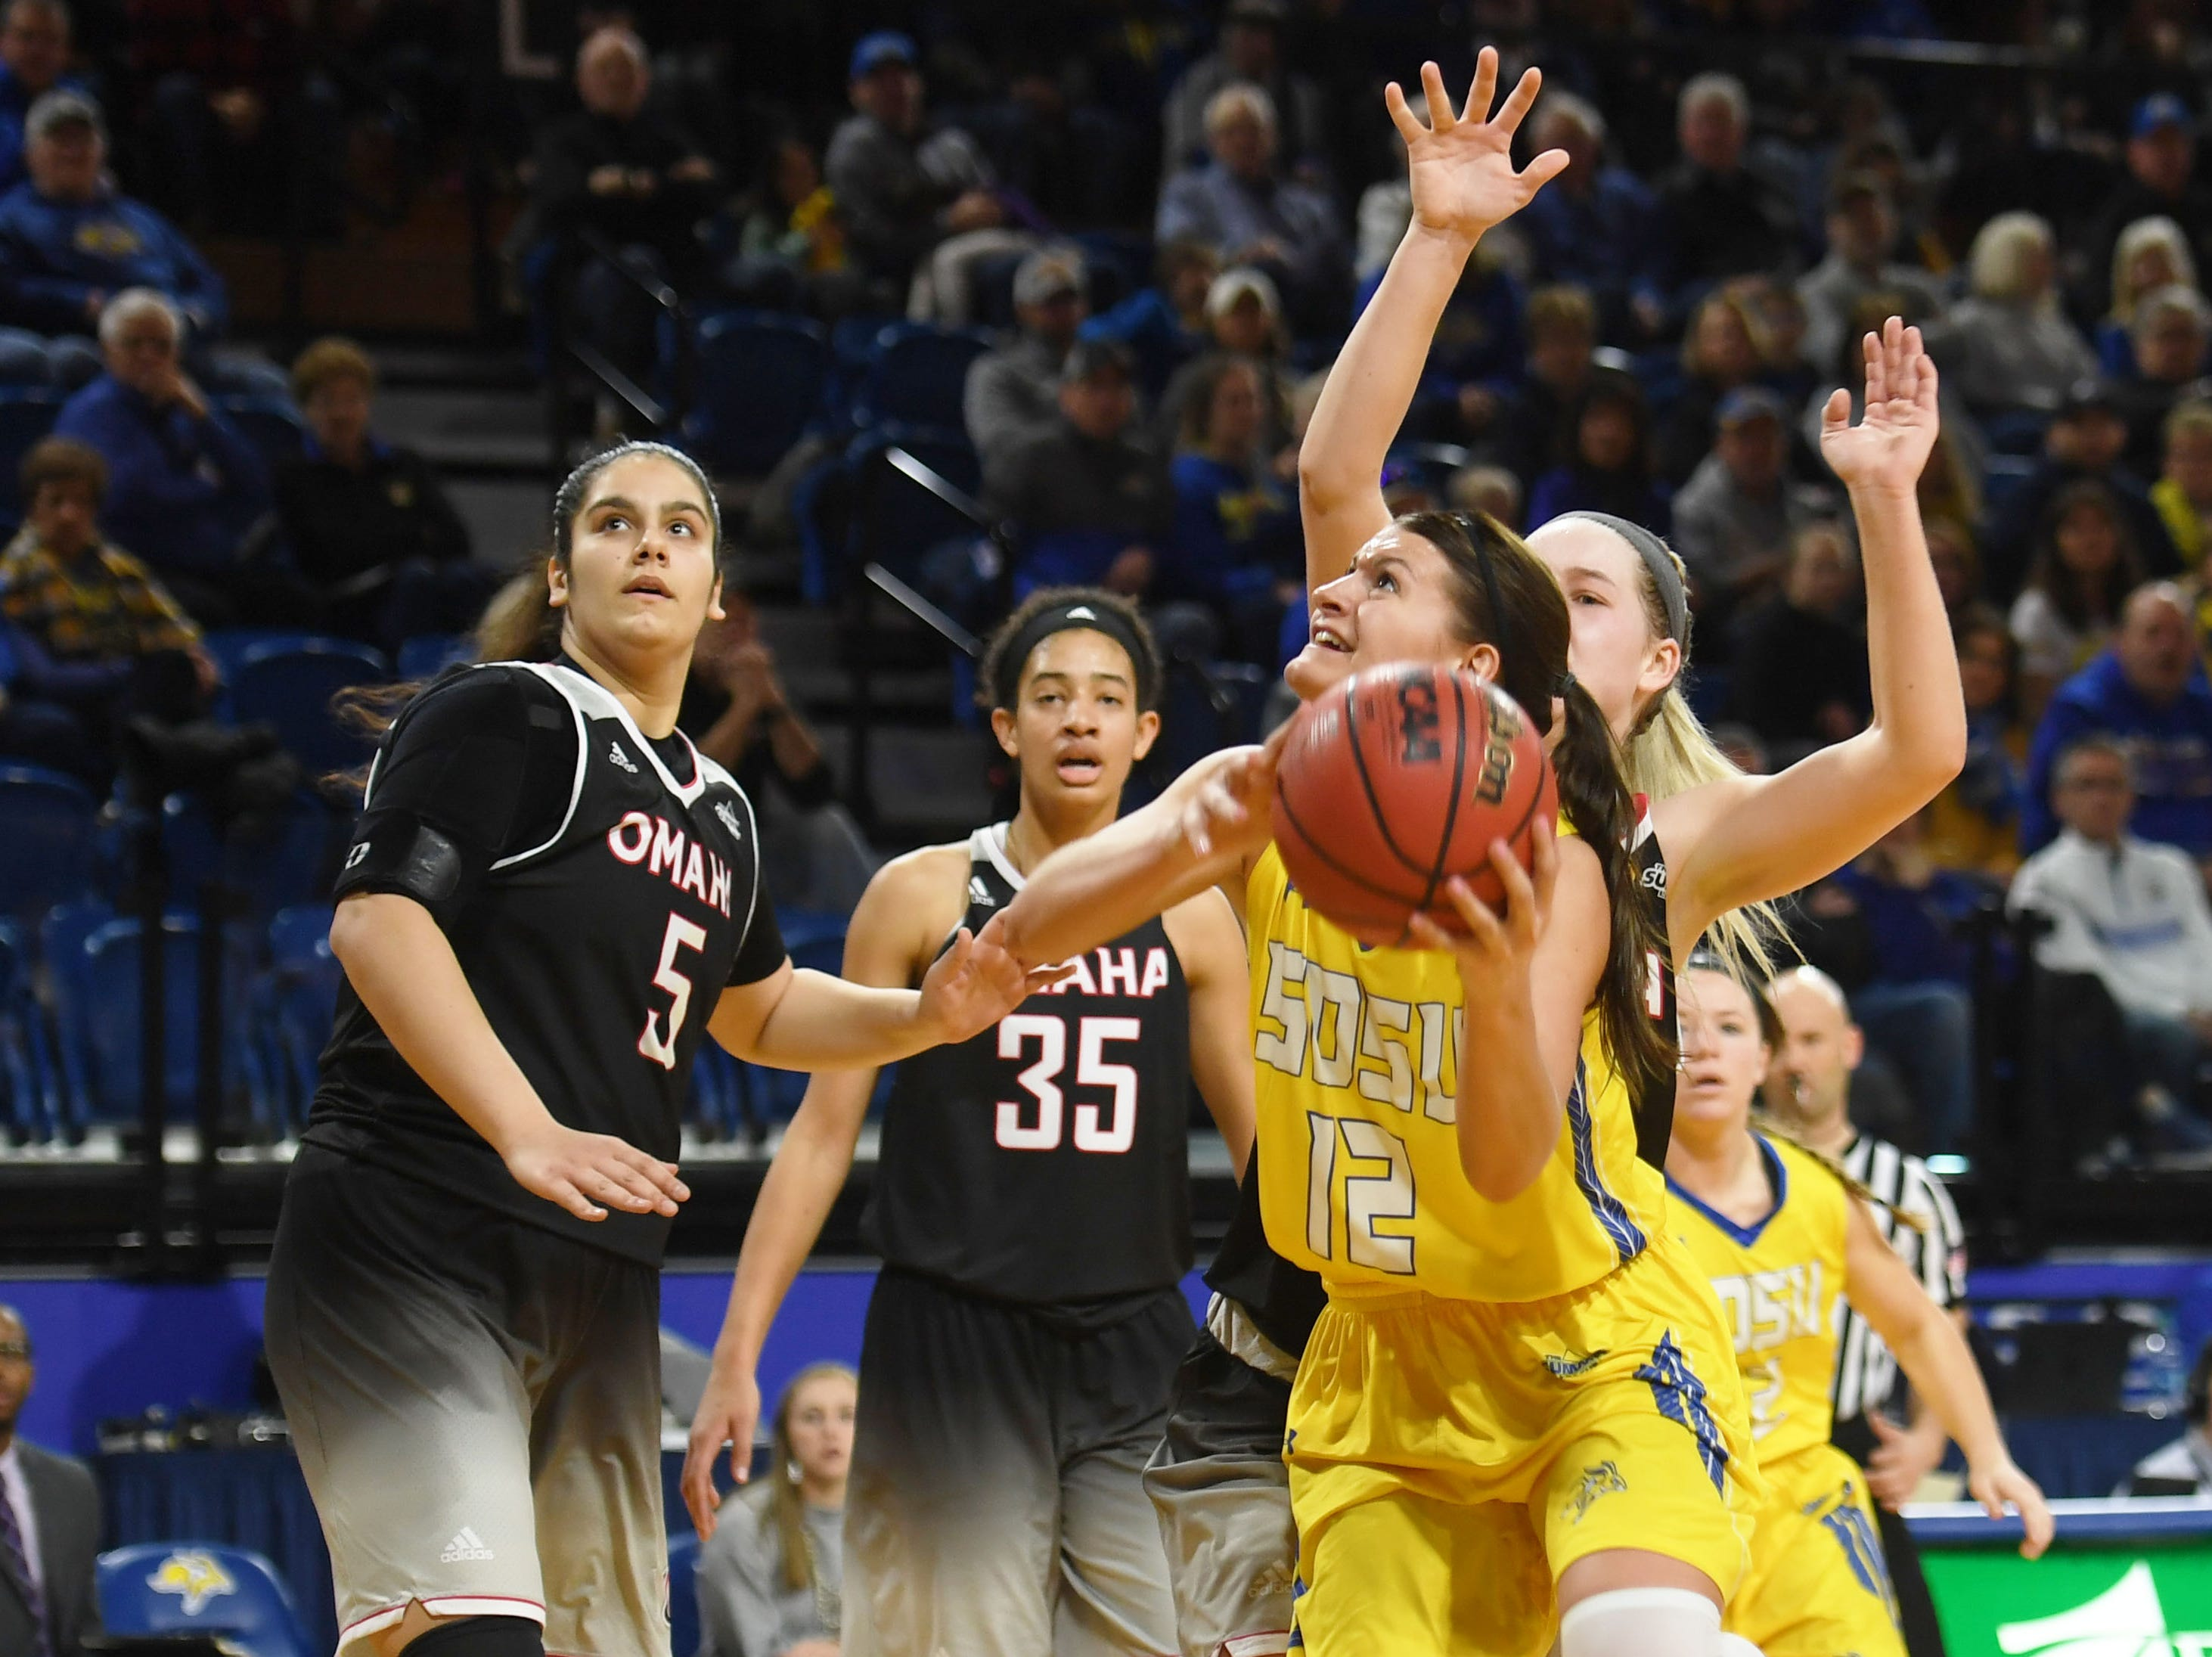 SDSU's Macy Miller attempts to score against Omaha during the game Saturday, Jan. 26, at Frost Arena in Brookings.